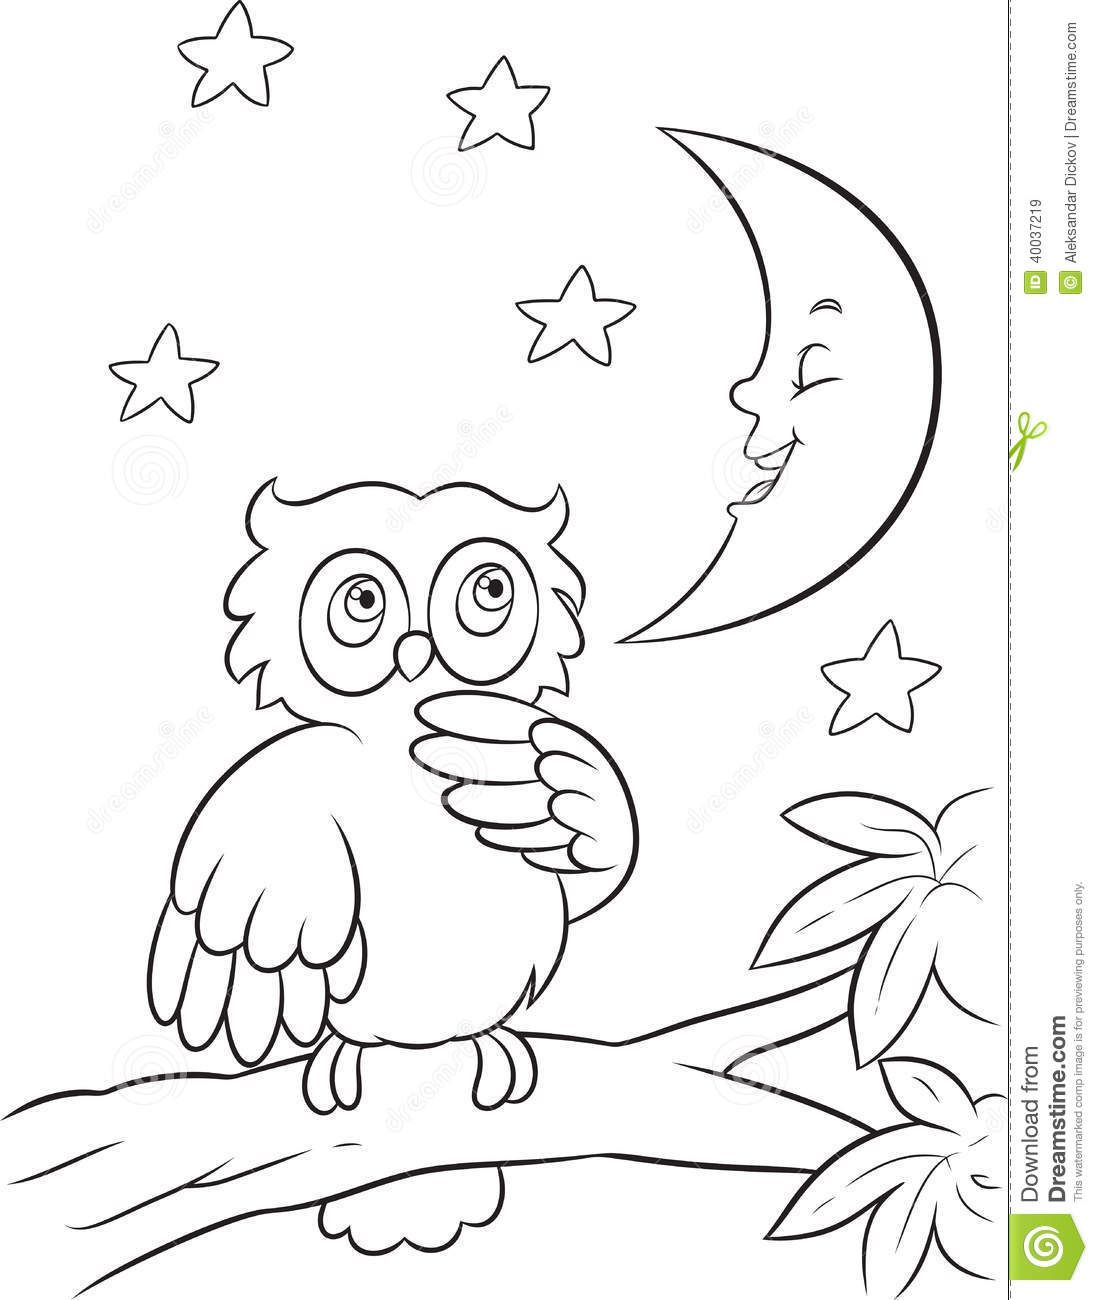 Baby Owl Cartoon Coloring Pages Owl Coloring Pages Cartoon